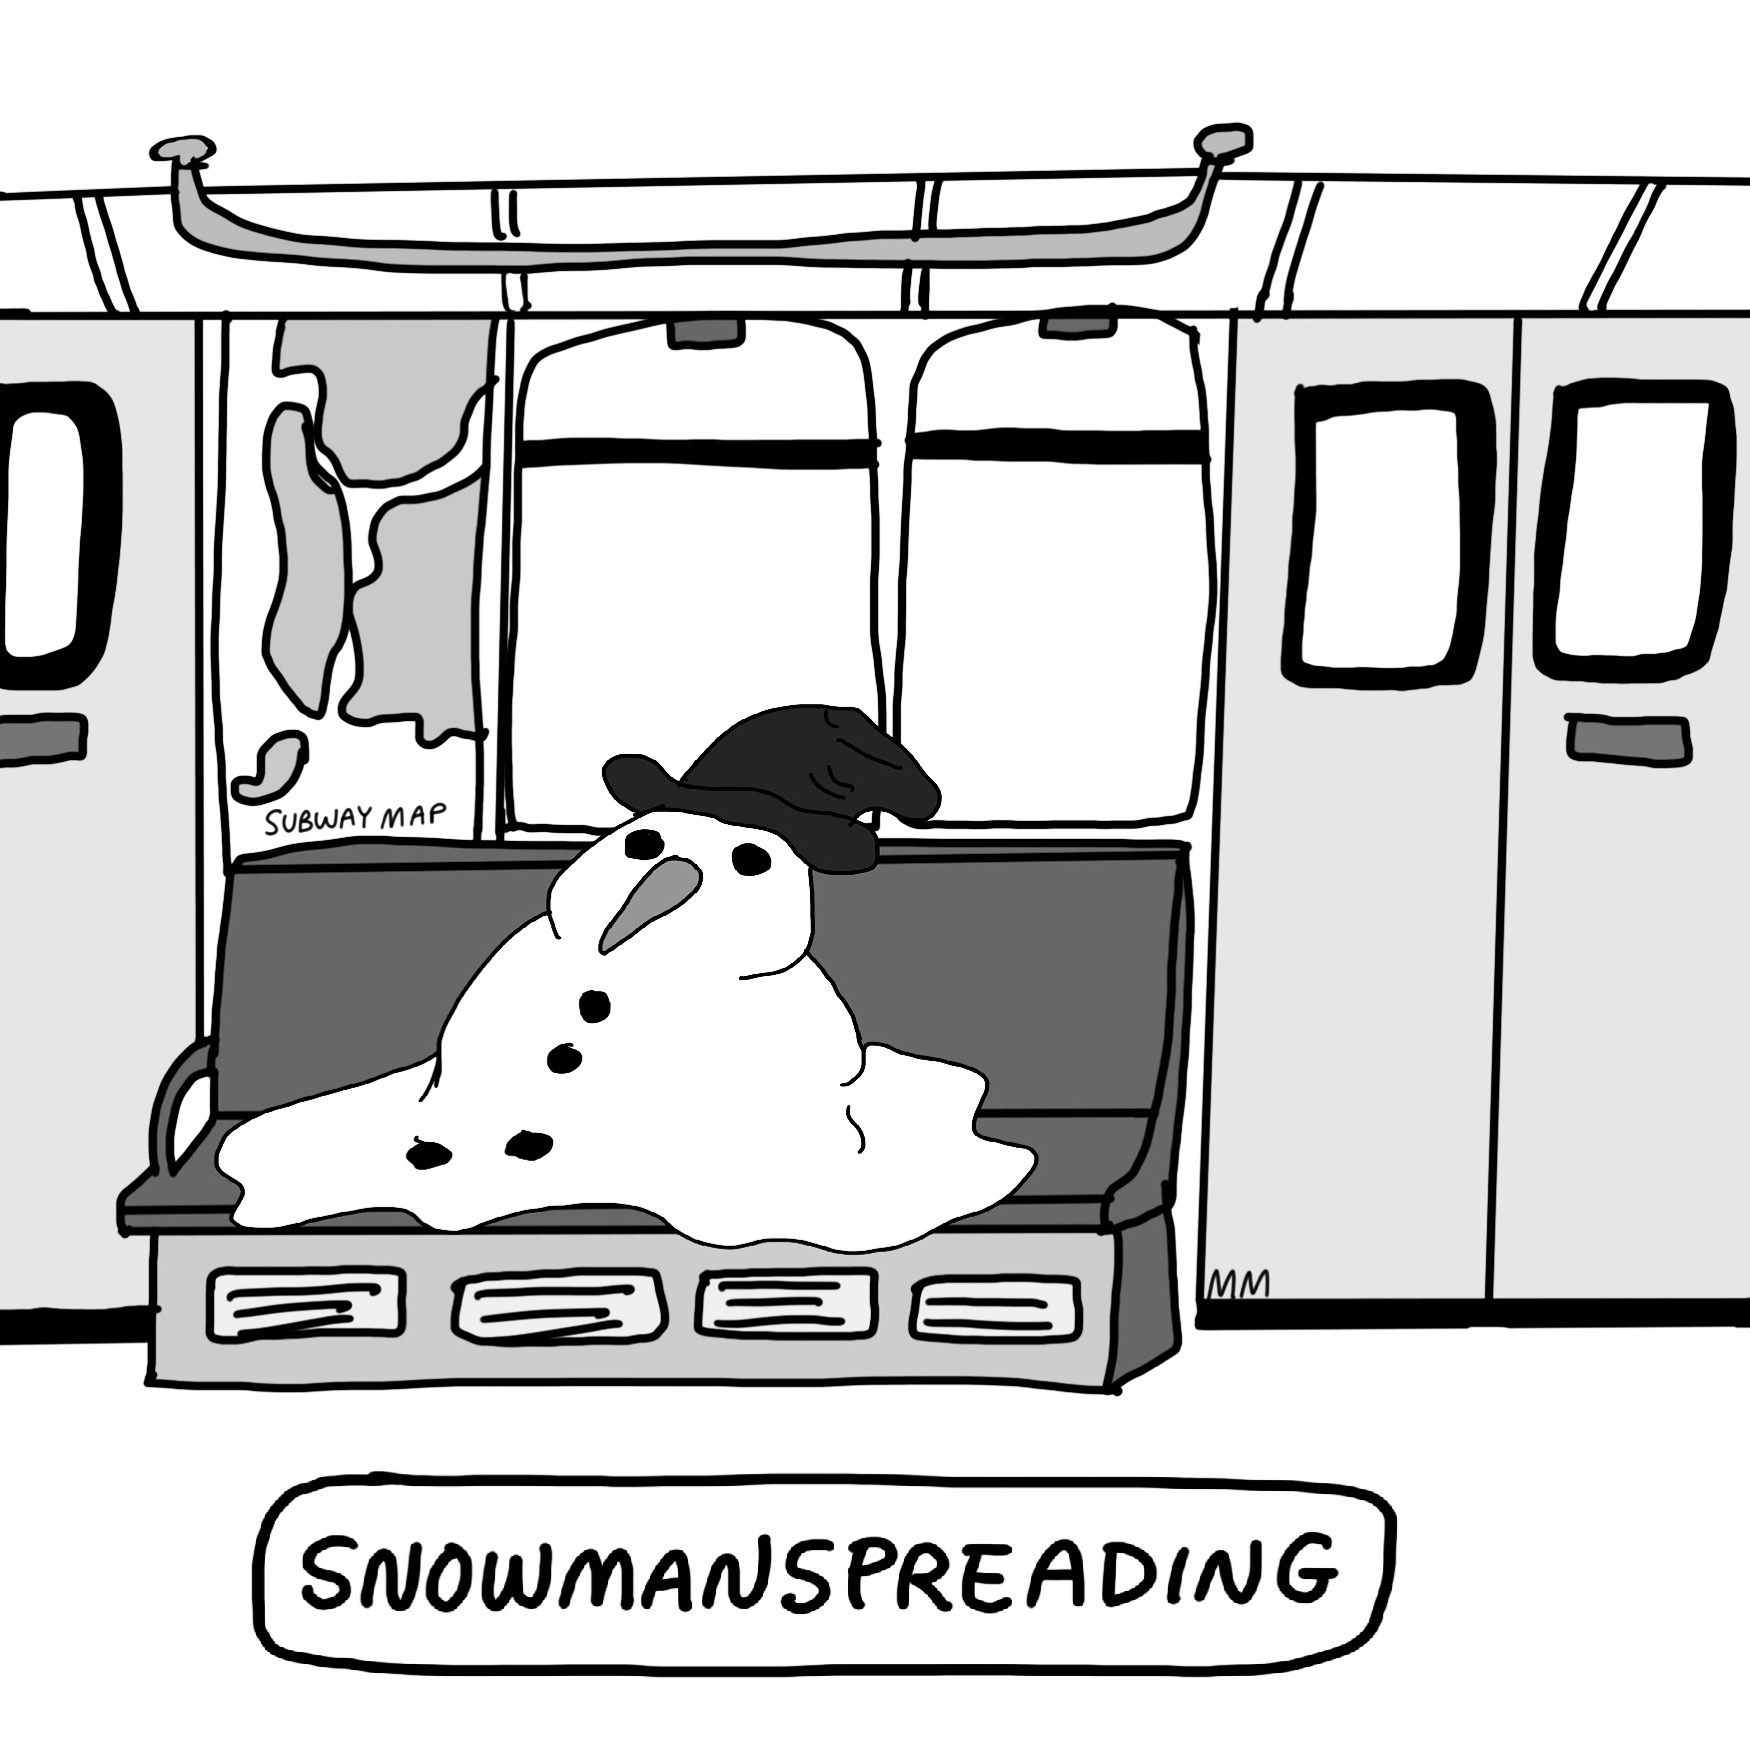 Snowmanspreading